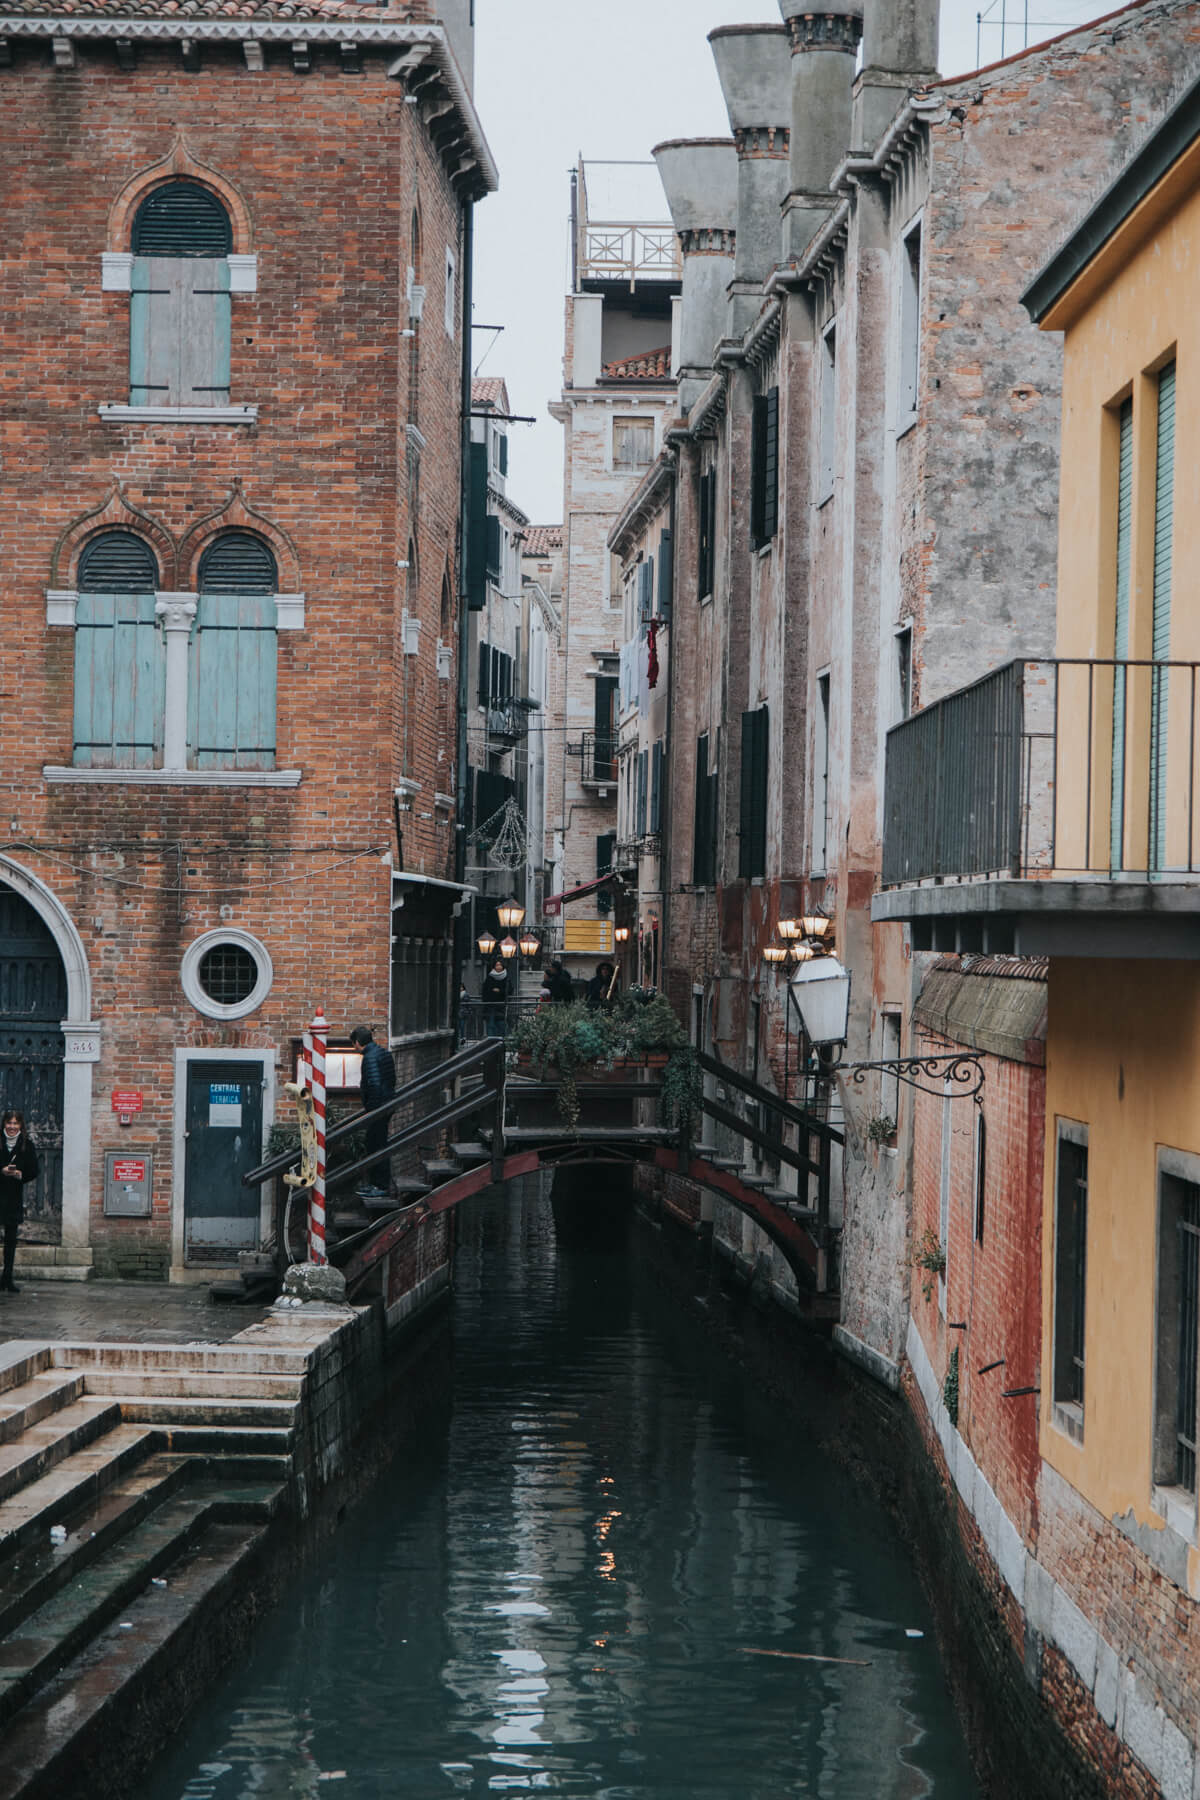 Bridges of Venice